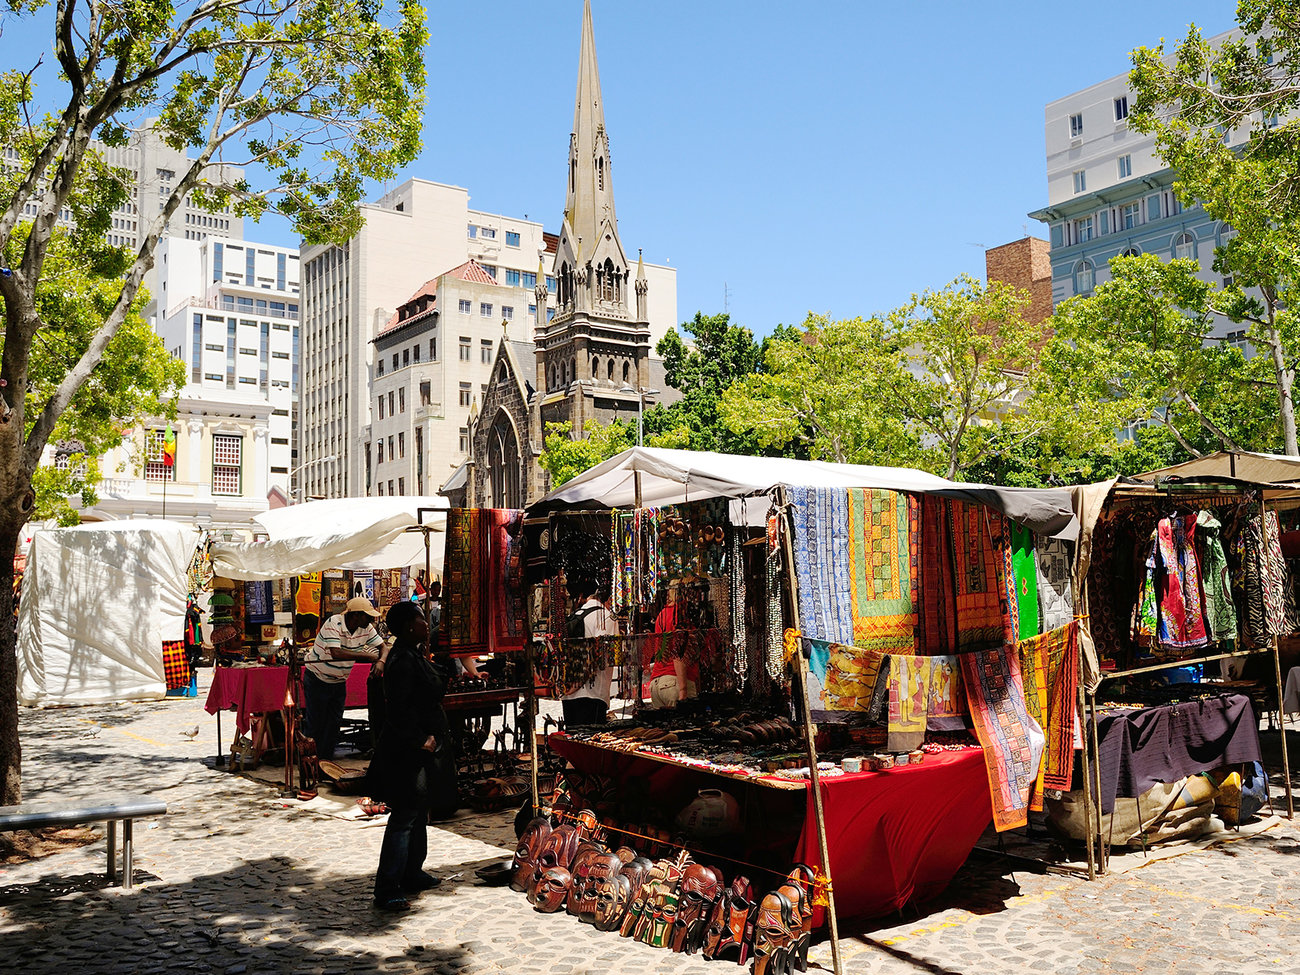 Greenmarket Square in Cape Town